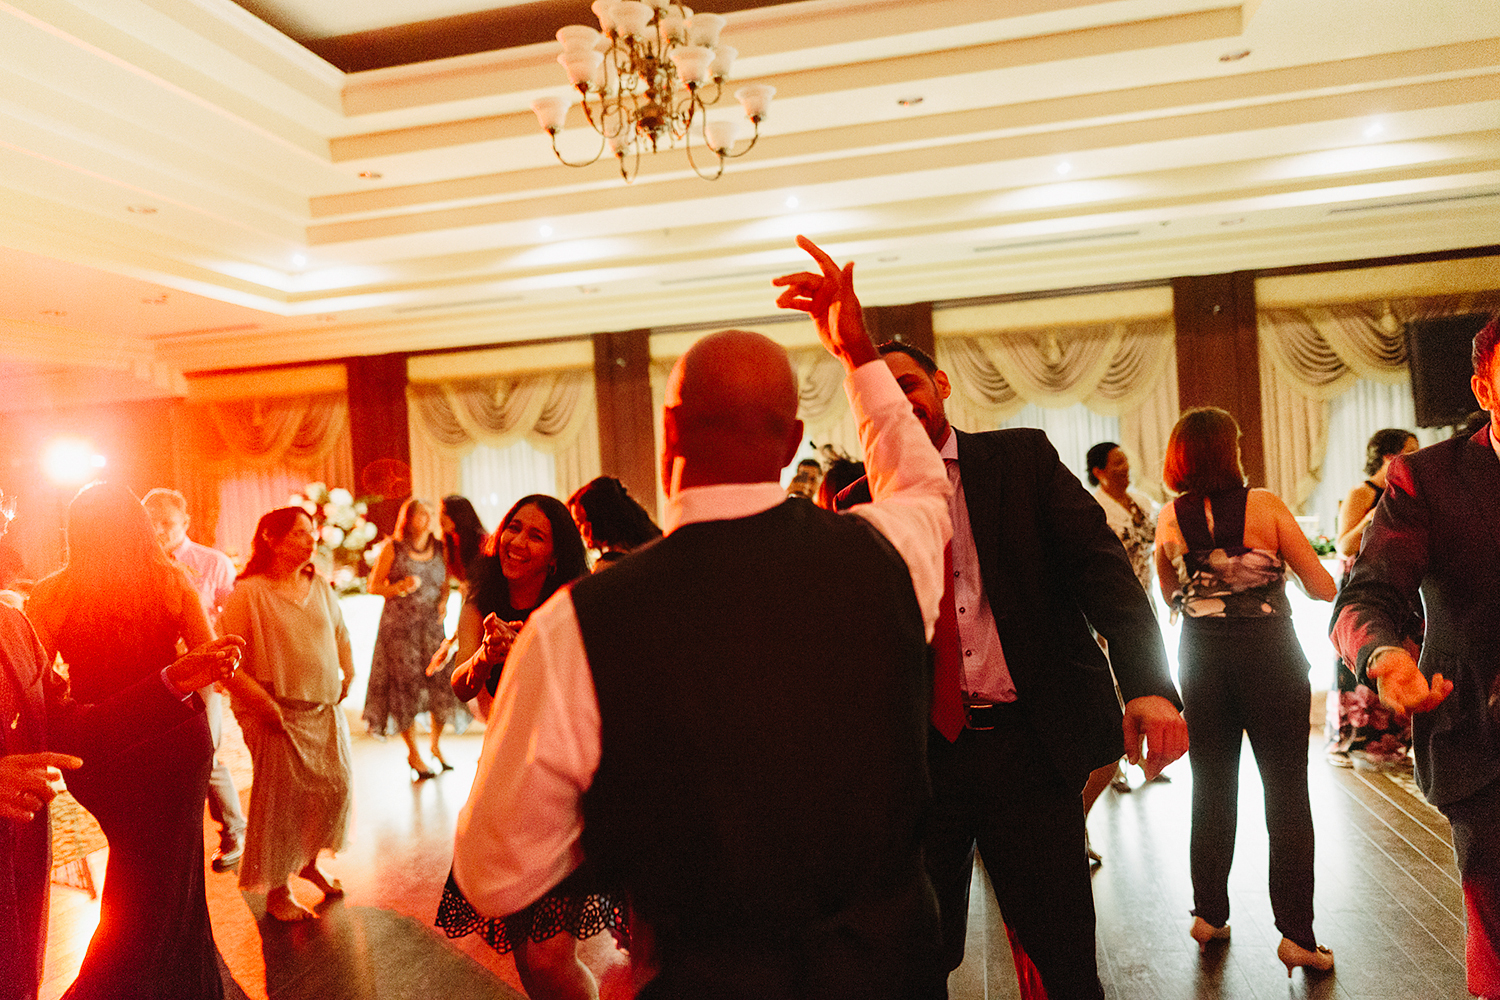 Toronto's-Best-Film-Wedding-Photography-3B-Photography-Multicultural-wedding-day-two-Hamilton-Grimsby-Toronto-Wedding-documentary-photojournalistic-photojournalism-prices-reception-guests-dancing-COLOURFUL.jpg